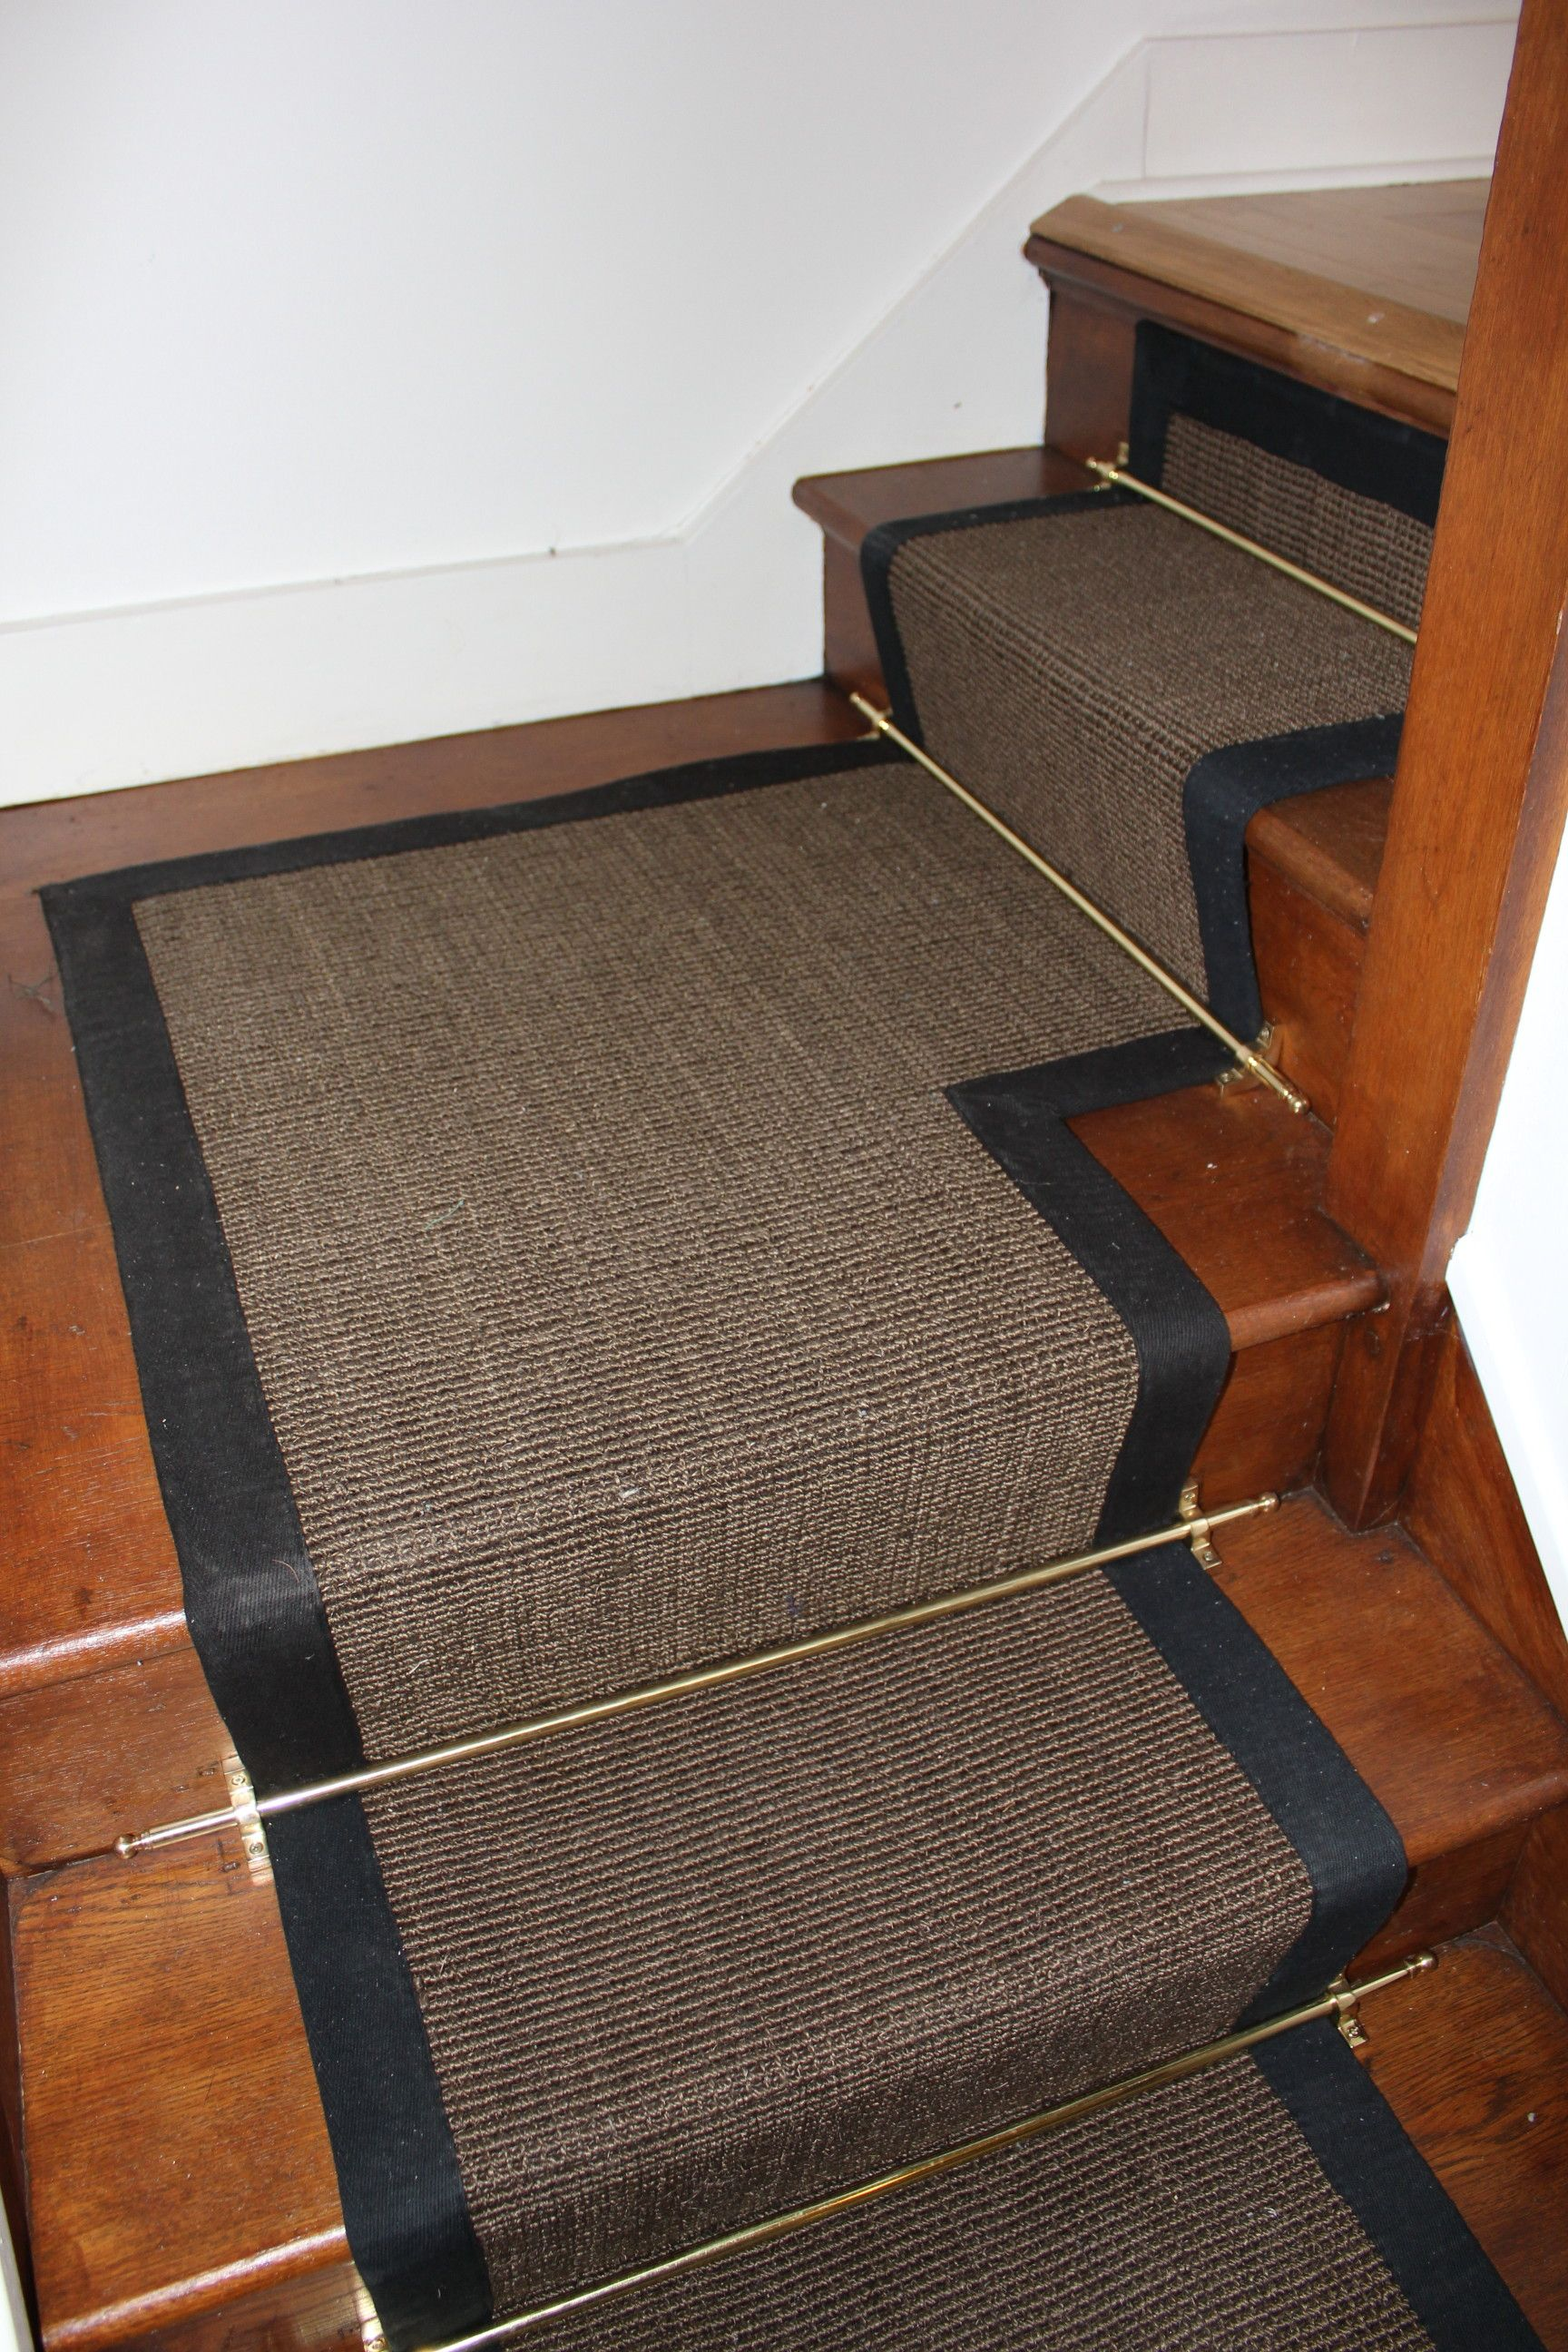 Black And Gray Fitted Carpet Runner On Cherry Finished Wooden Stair Using  Golf Polished Iron Holder With Rugs And Runners Also Carpet Runners On  Stairs .